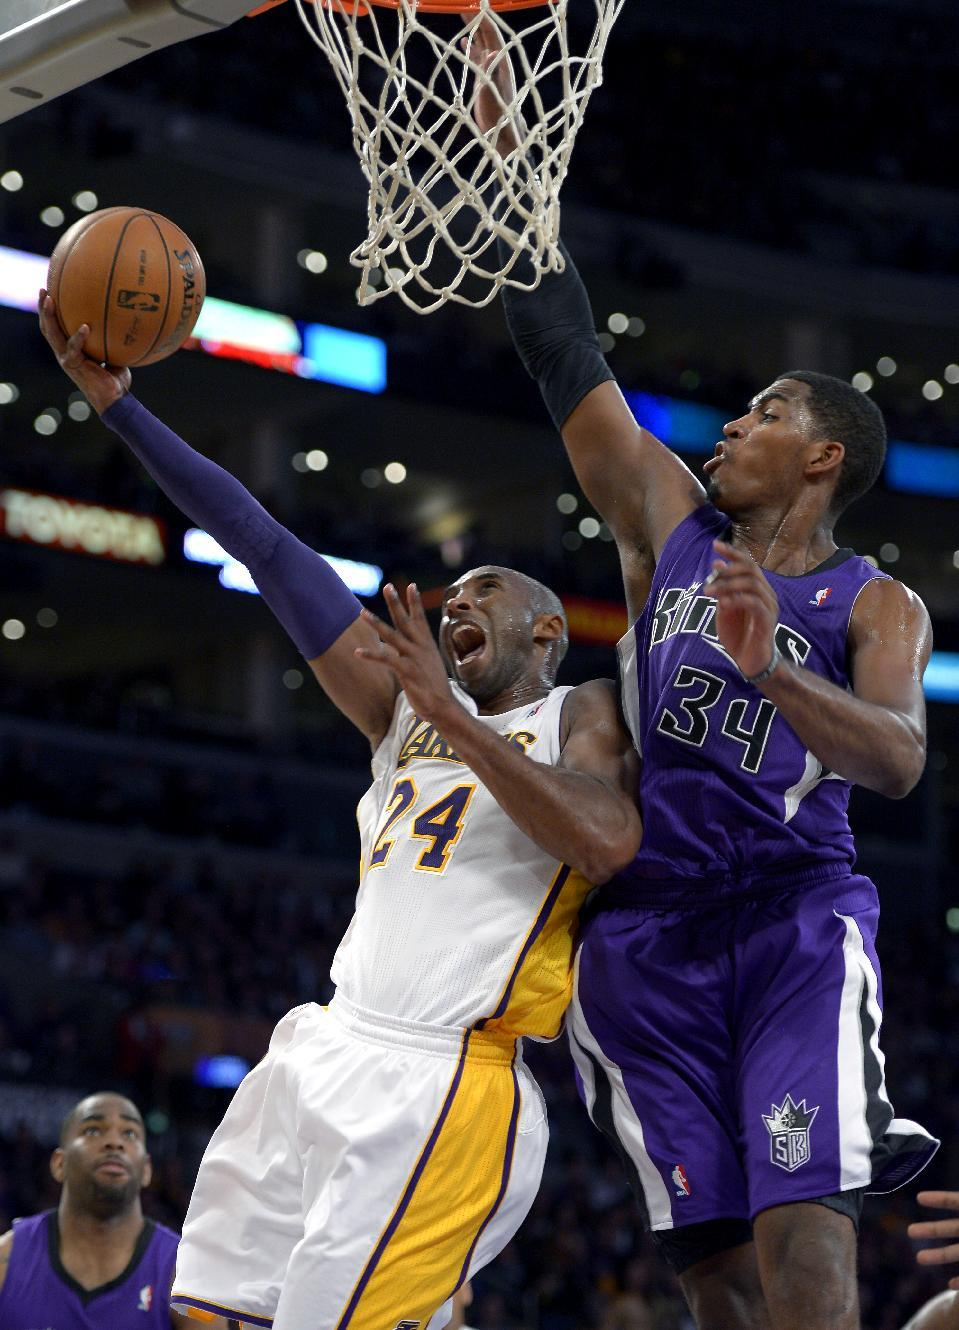 Los Angeles Lakers guard Kobe Bryant, left, puts up a shot as Sacramento Kings forward Jason Thompson defends during the second half of their NBA basketball game, Sunday, Nov. 11, 2012, in Los Angeles. The Lakers won 103-90.  (AP Photo/Mark J. Terrill)